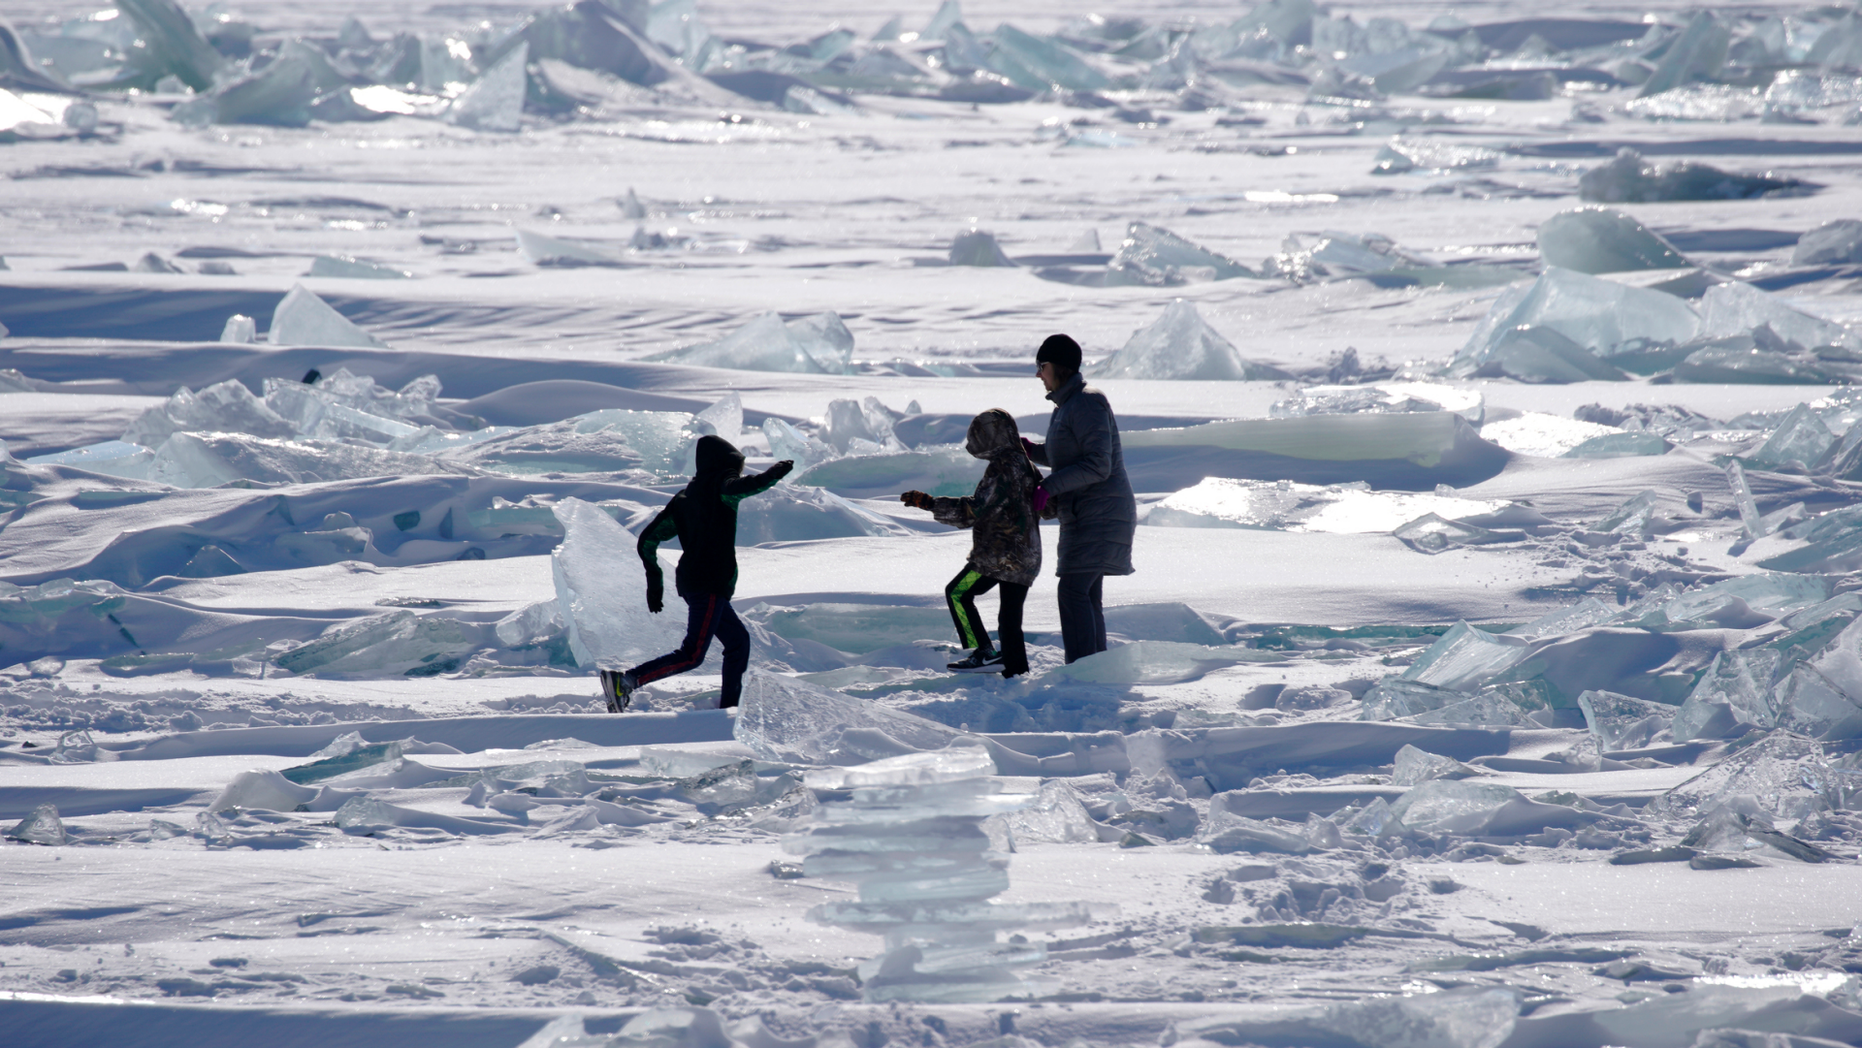 In this Friday, Feb. 22, 2019, photo, people play on the Ice on Lake Superior, starting to pack in along the shore near Duluth, Minn., and attracting explorers and ice fishermen out on to the lake. Access to the mainland ice caves remain CLOSED. Ice continues to move around quite a bit. Over the last few days, open water has been visible from Meyers Beach as well as near Eagle Island. This ice is typically poor quality ice, which reacts poorly to movement due to weak bonding along the fractures. (Brian Peterson/Star Tribune via AP)